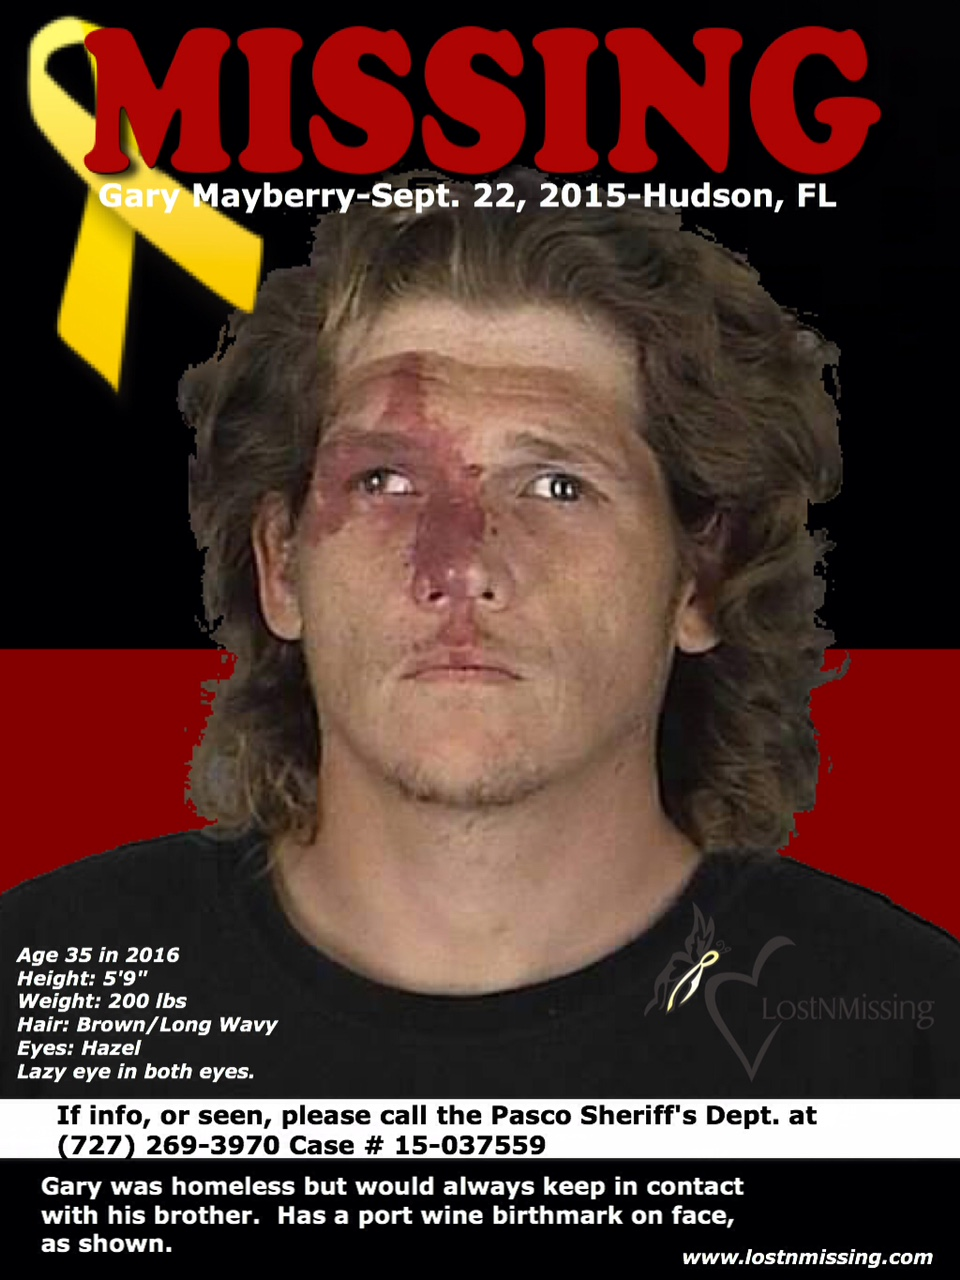 LostNMissing, Inc: Missing: Gary Mayberry - Sept  22, 2015